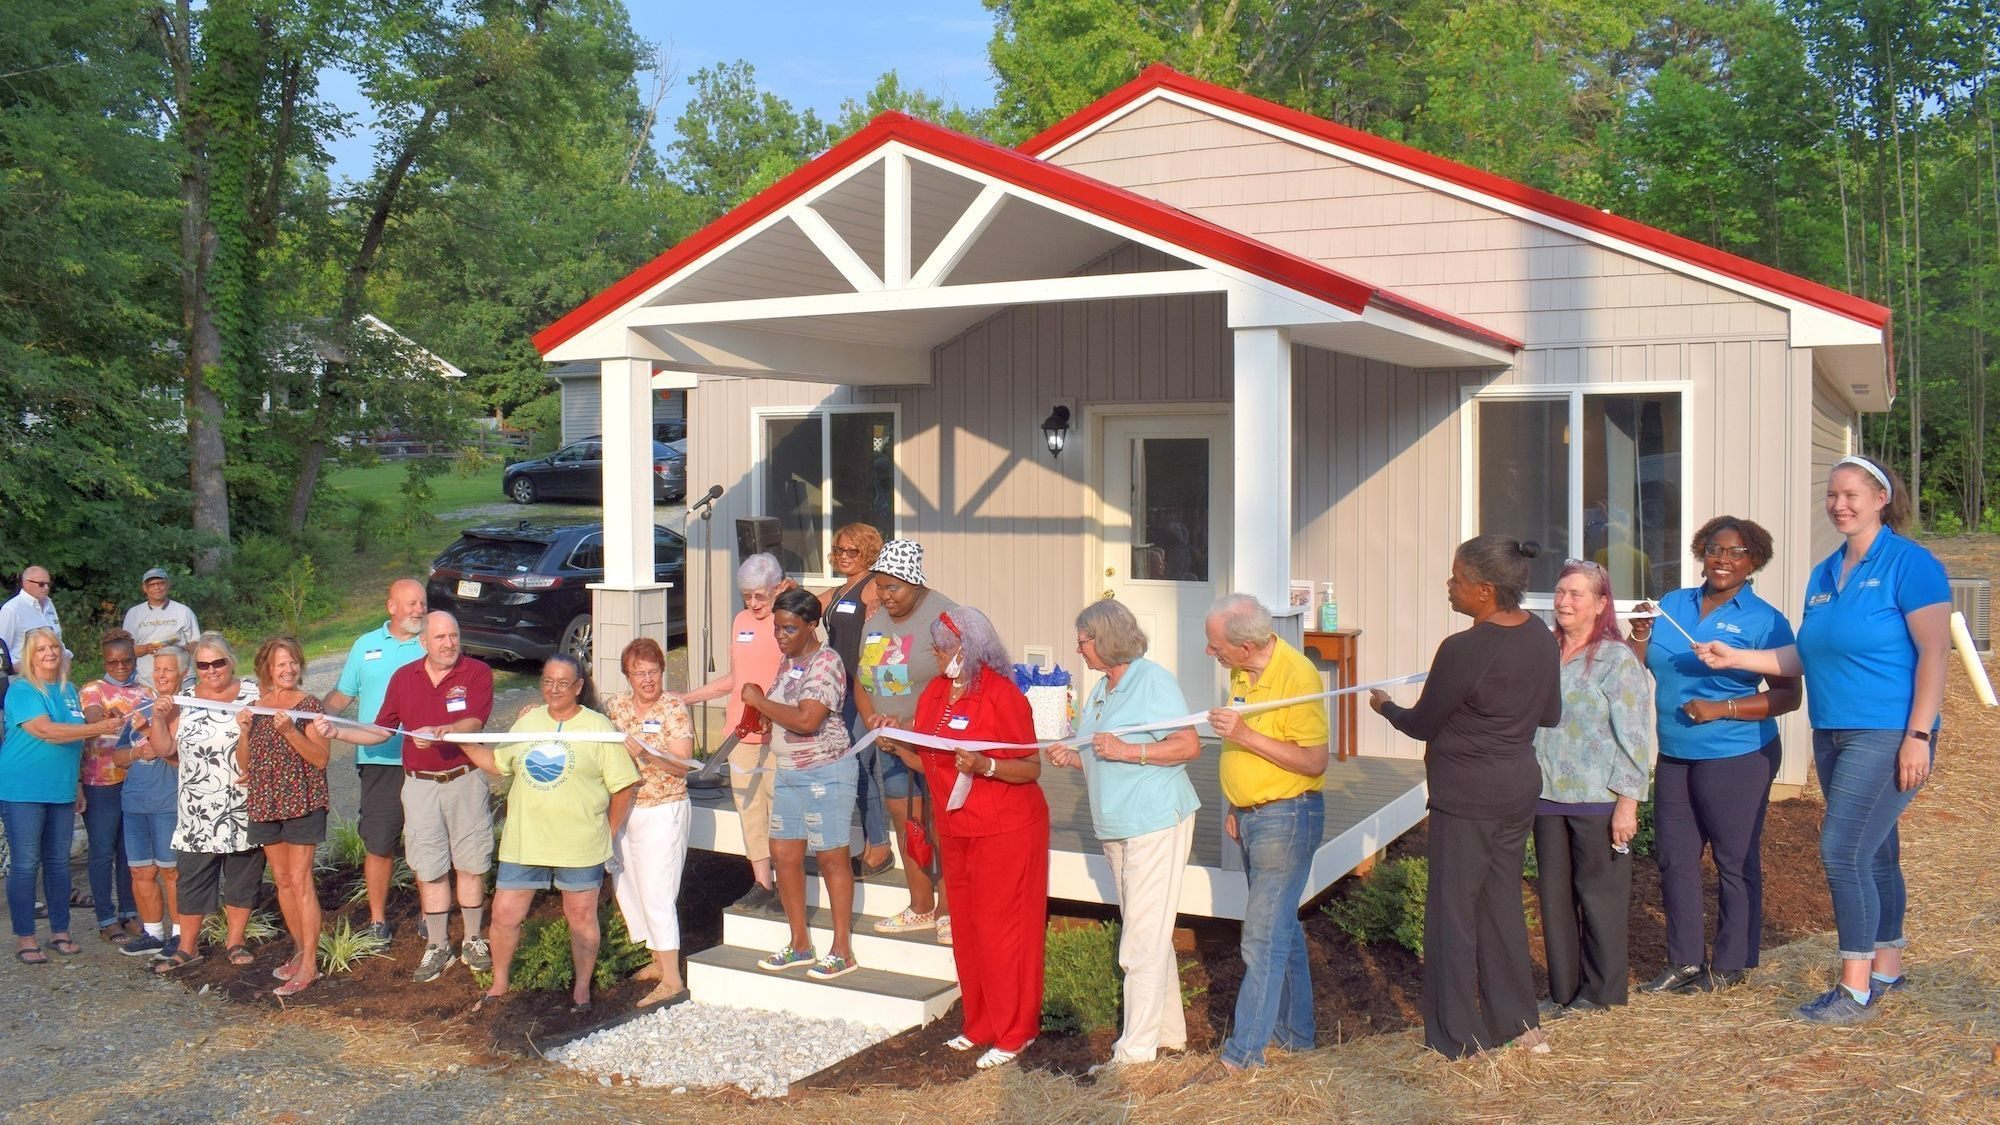 Habitat homeowner cuts ribbon on new home with her three children